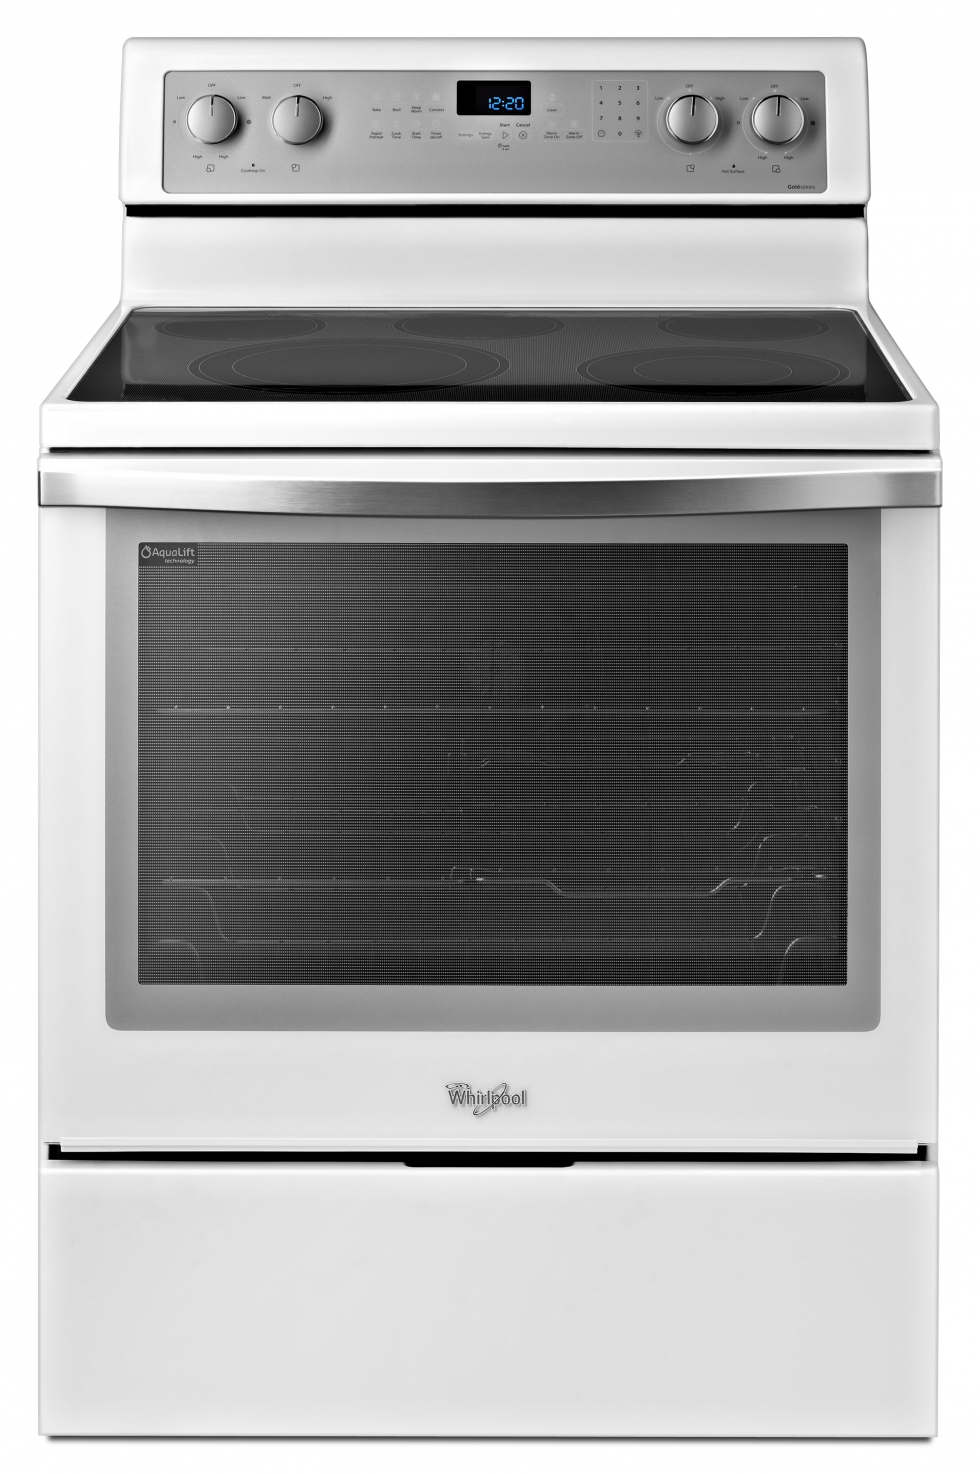 Whirlpool Gold Electric Range White